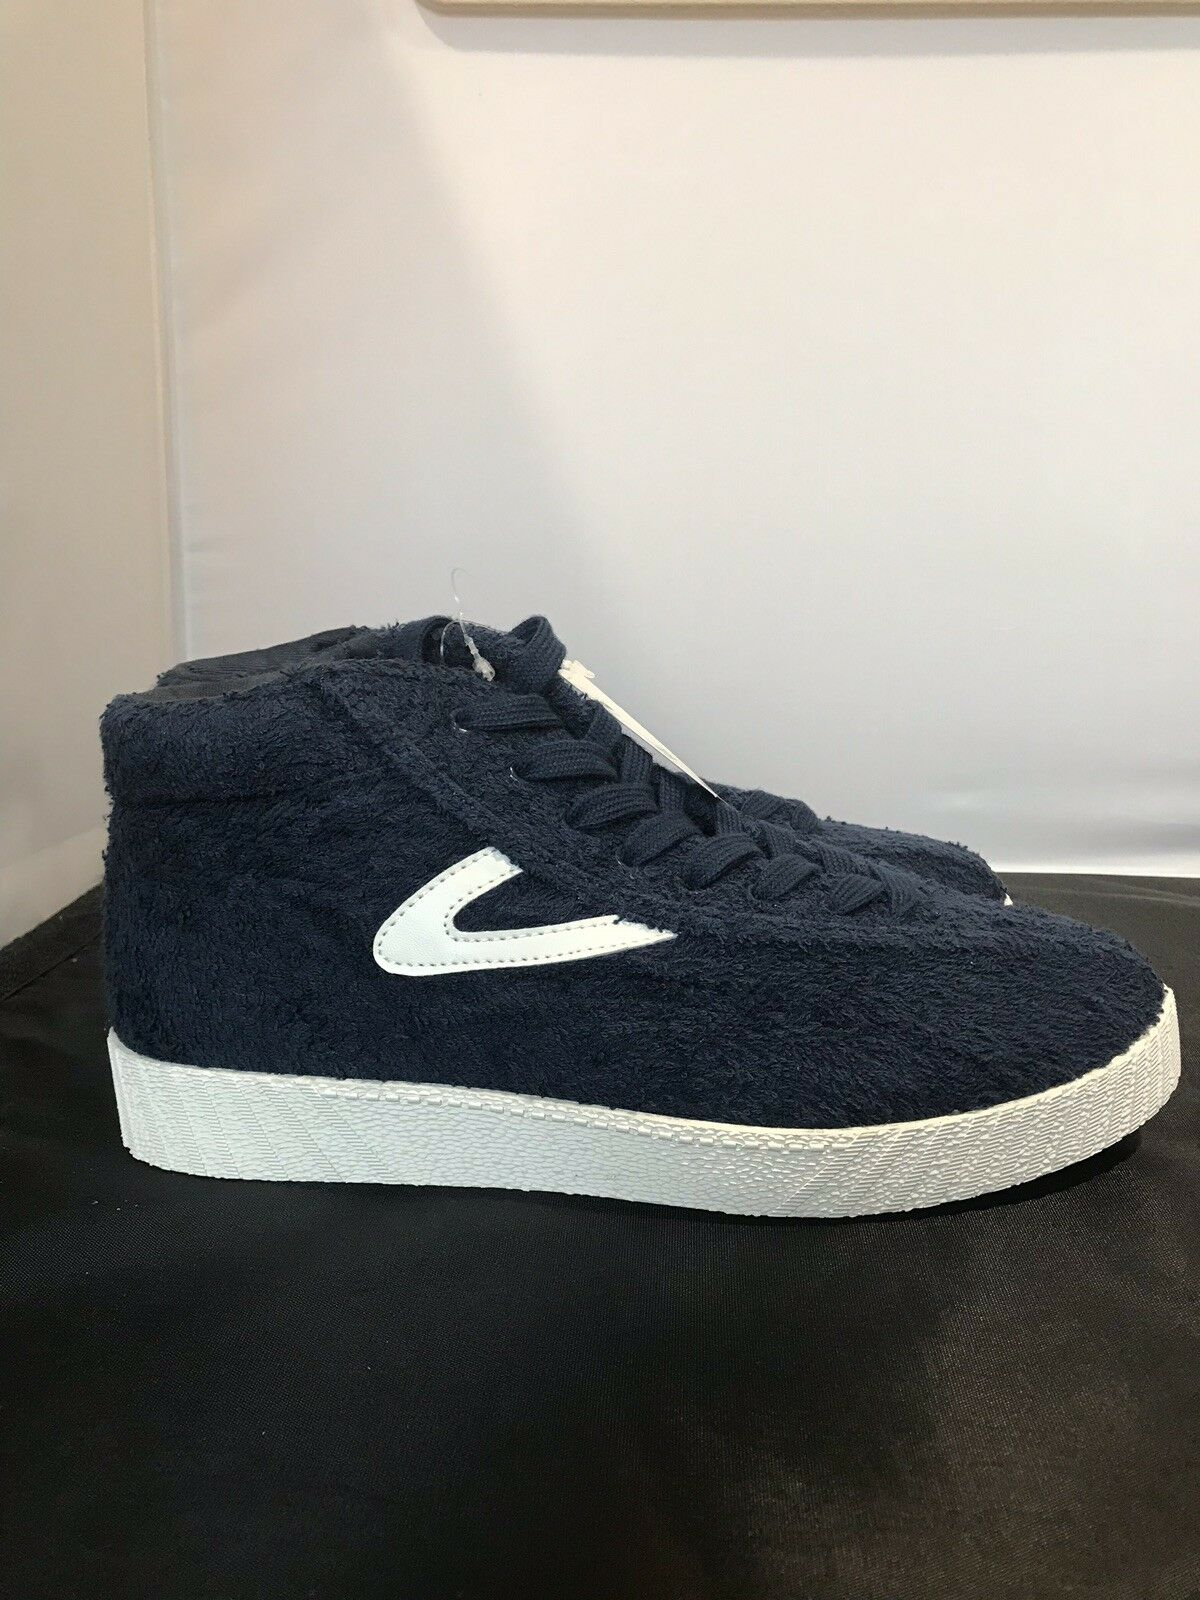 New  Tretorn Womens NY Lite Terry Cloth Hi Top bluee Sneakers 7M